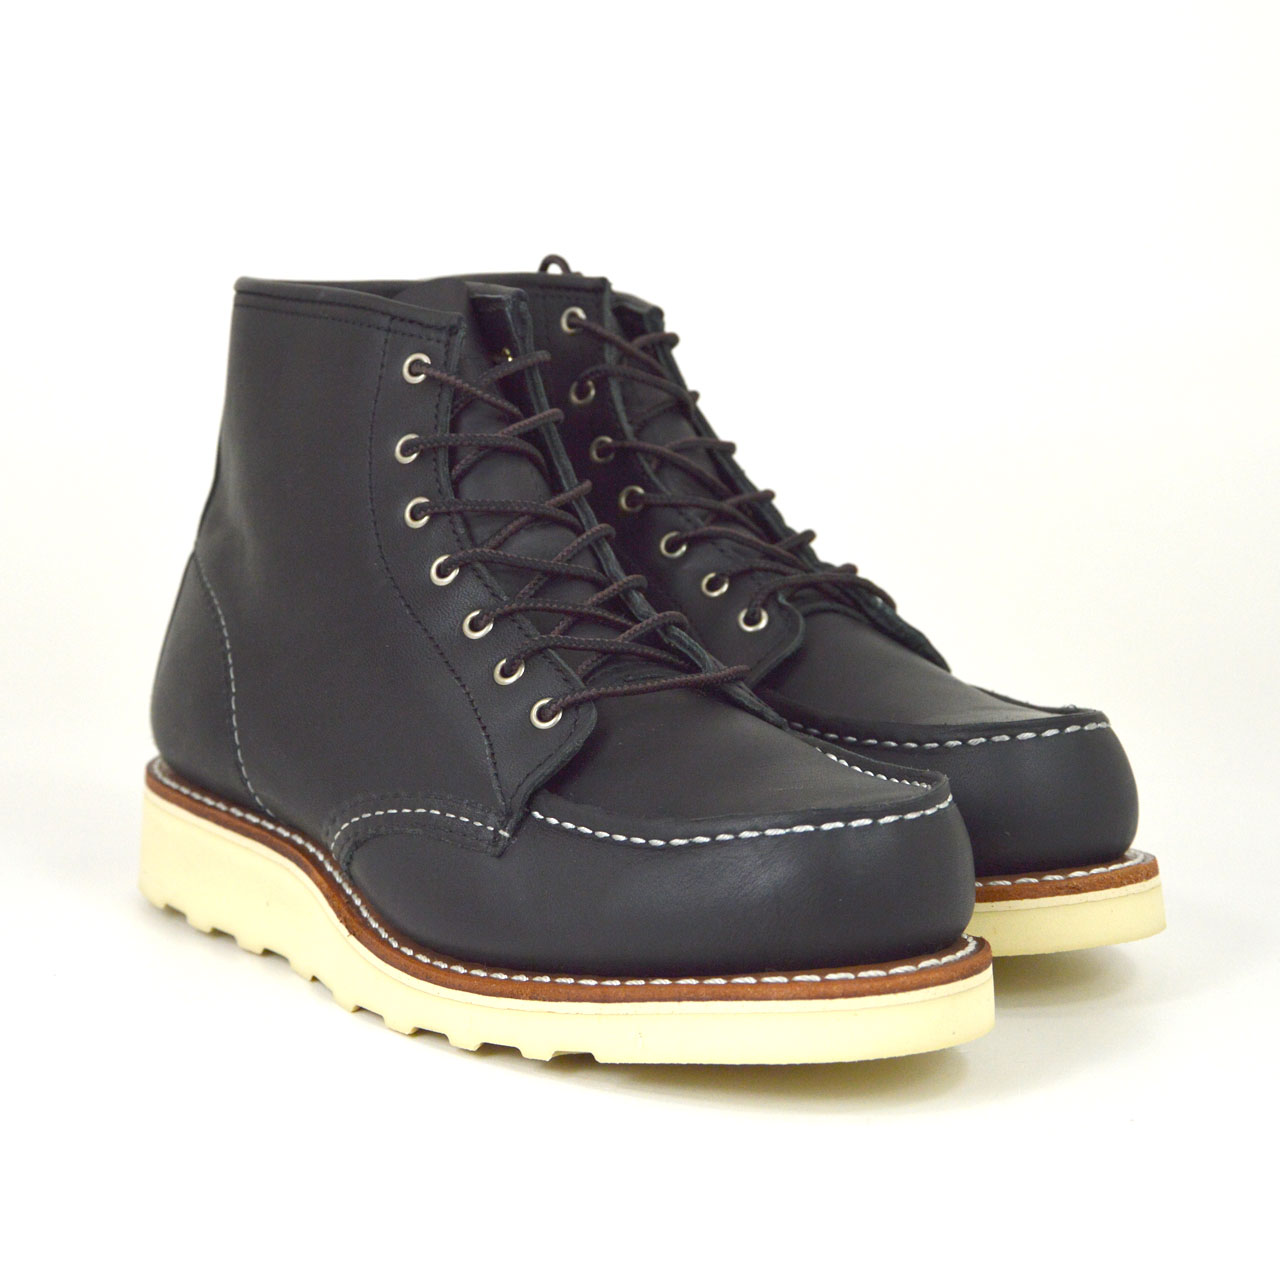 Red Wing - WOMENS MOC TOE 3373 - Black Boundary